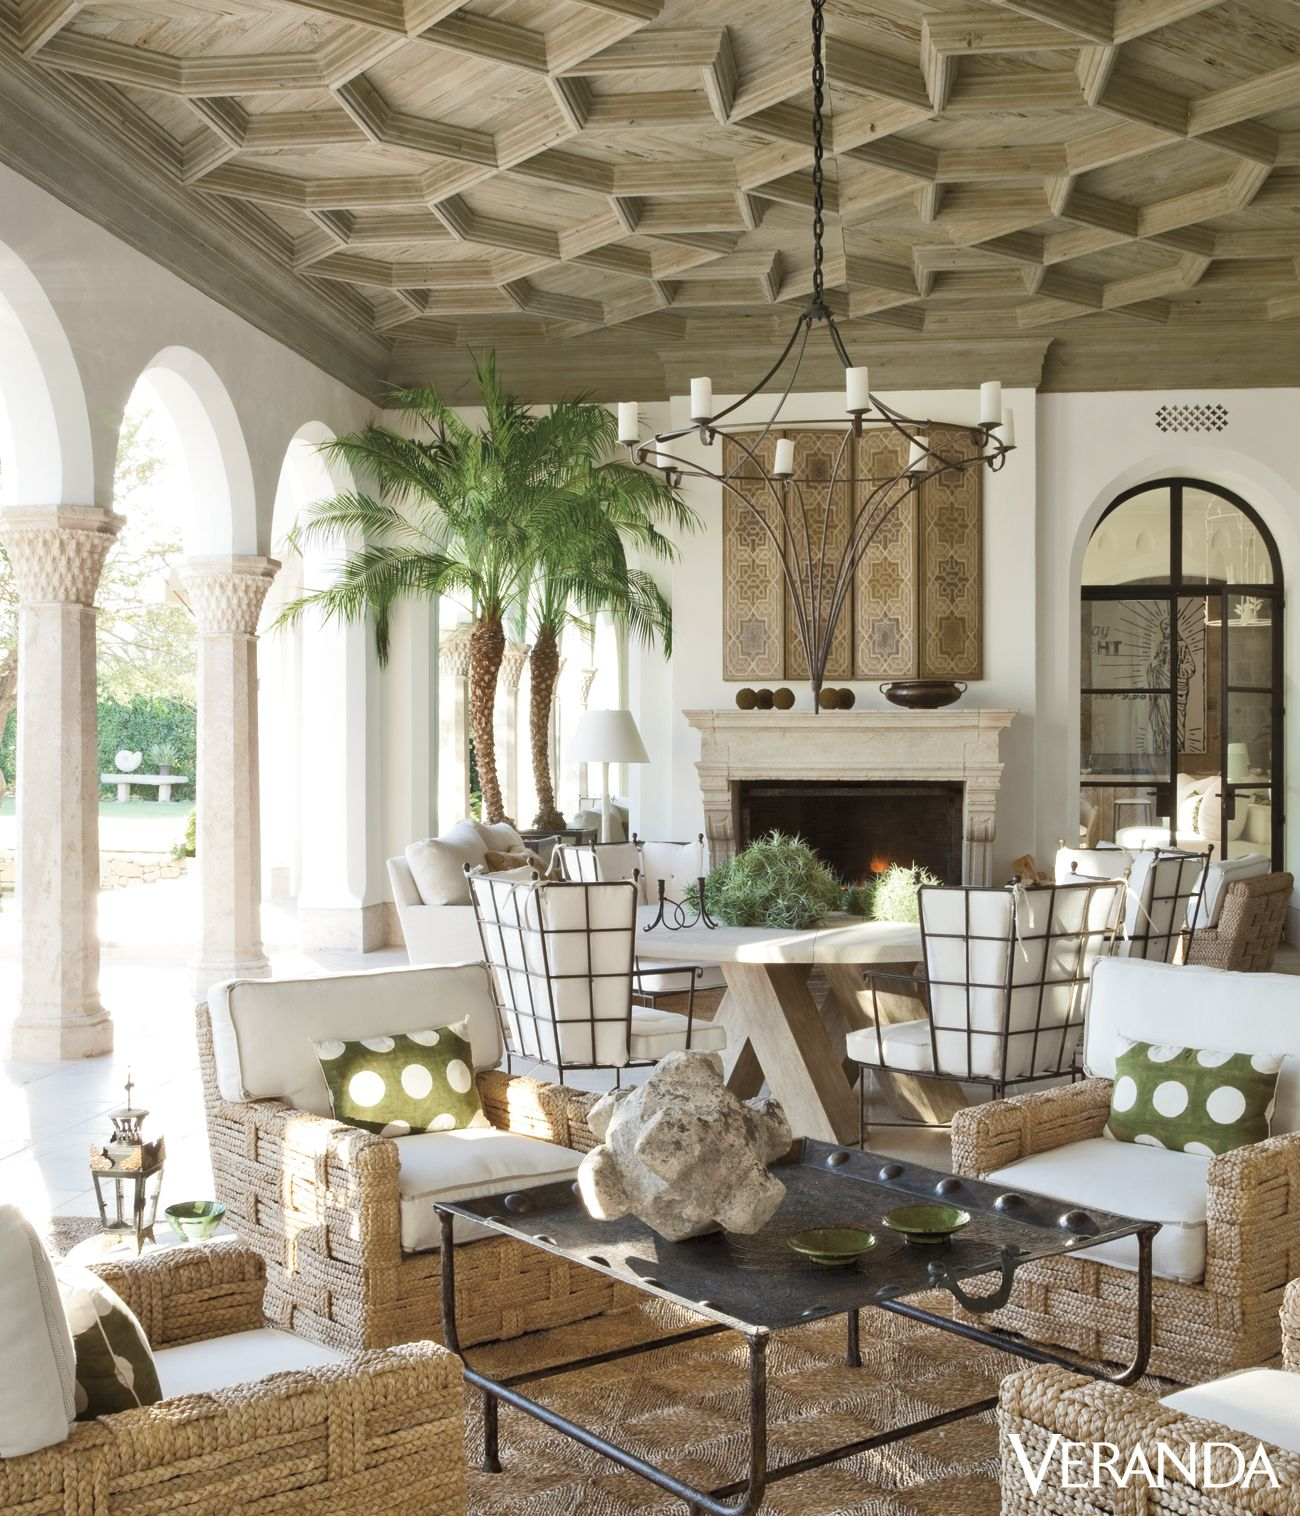 18 Favorite Outdoor Rooms: 14 Inspiring One-of-a-Kind Ceilings